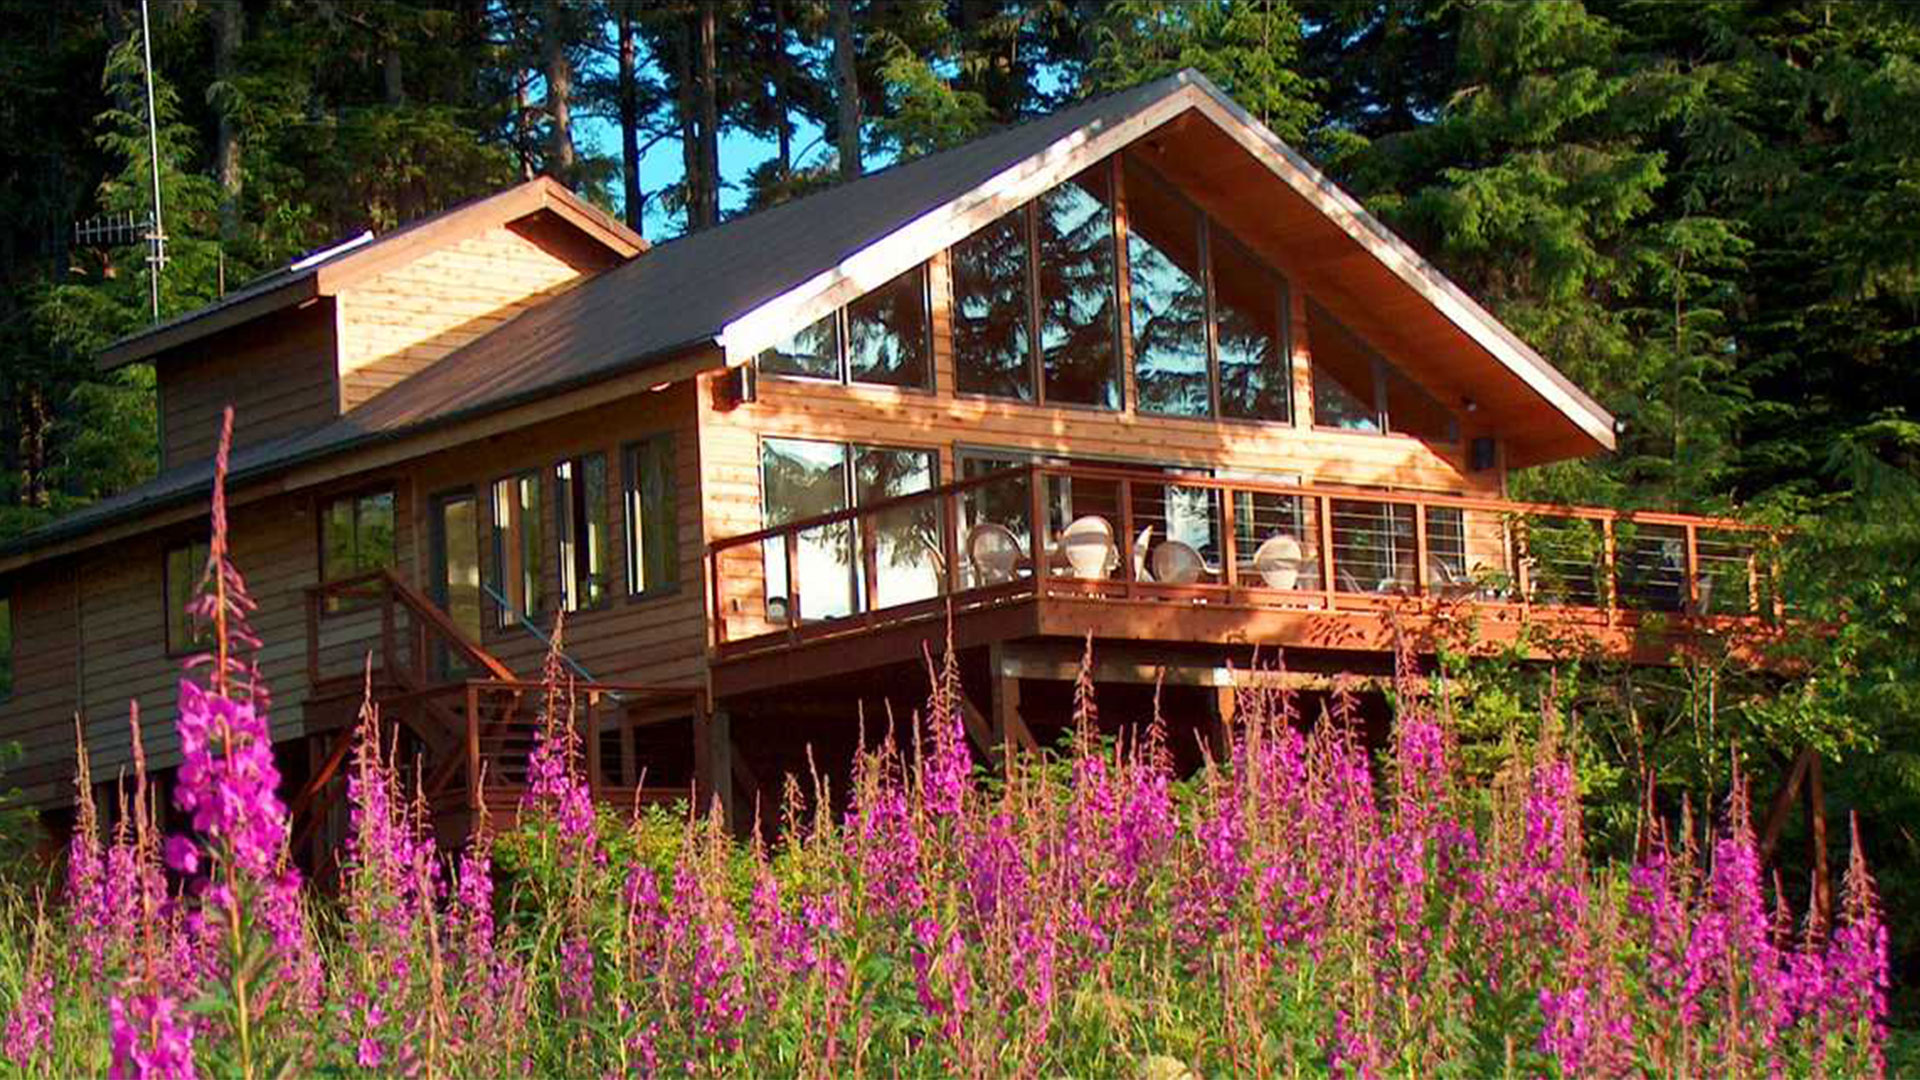 Alaska Fireweed Frames the Main Lodge